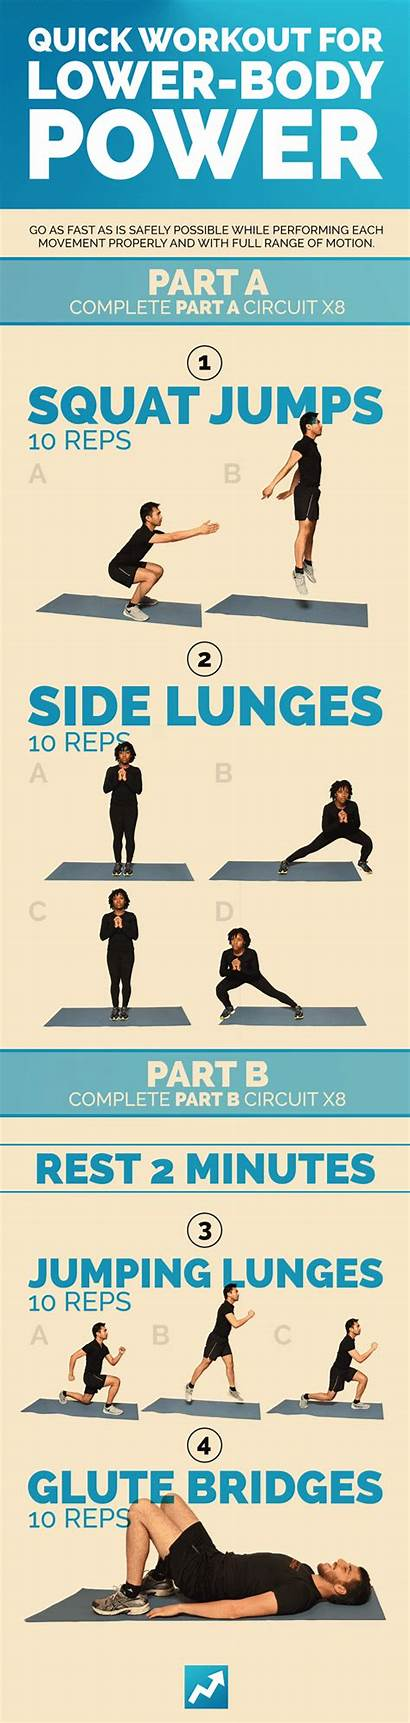 Workout Workouts Quick Lower Buzzfeed Power Exercises